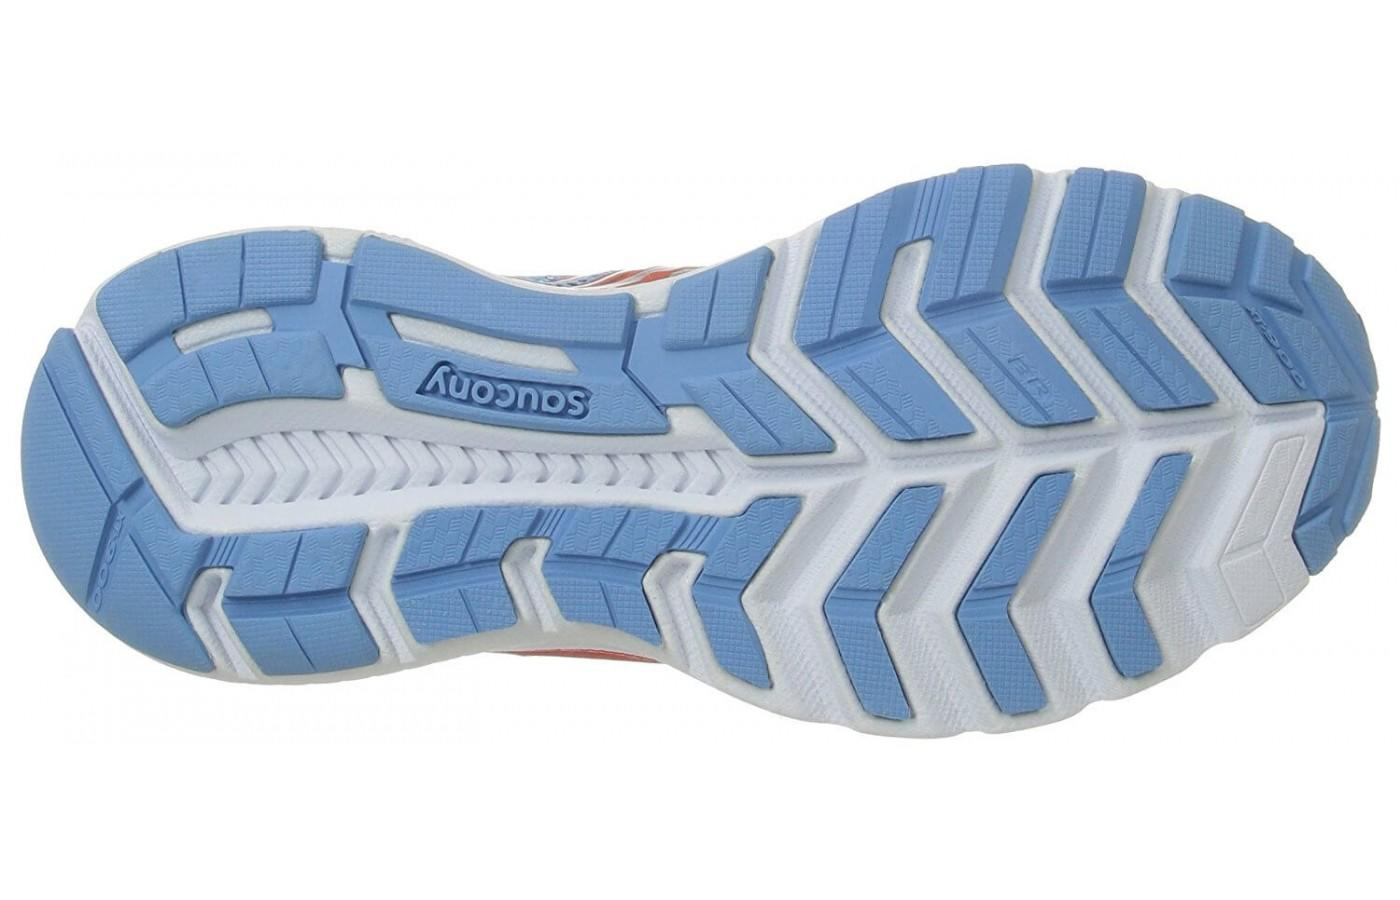 Saucony Swerve has an XT900 rubber outsole